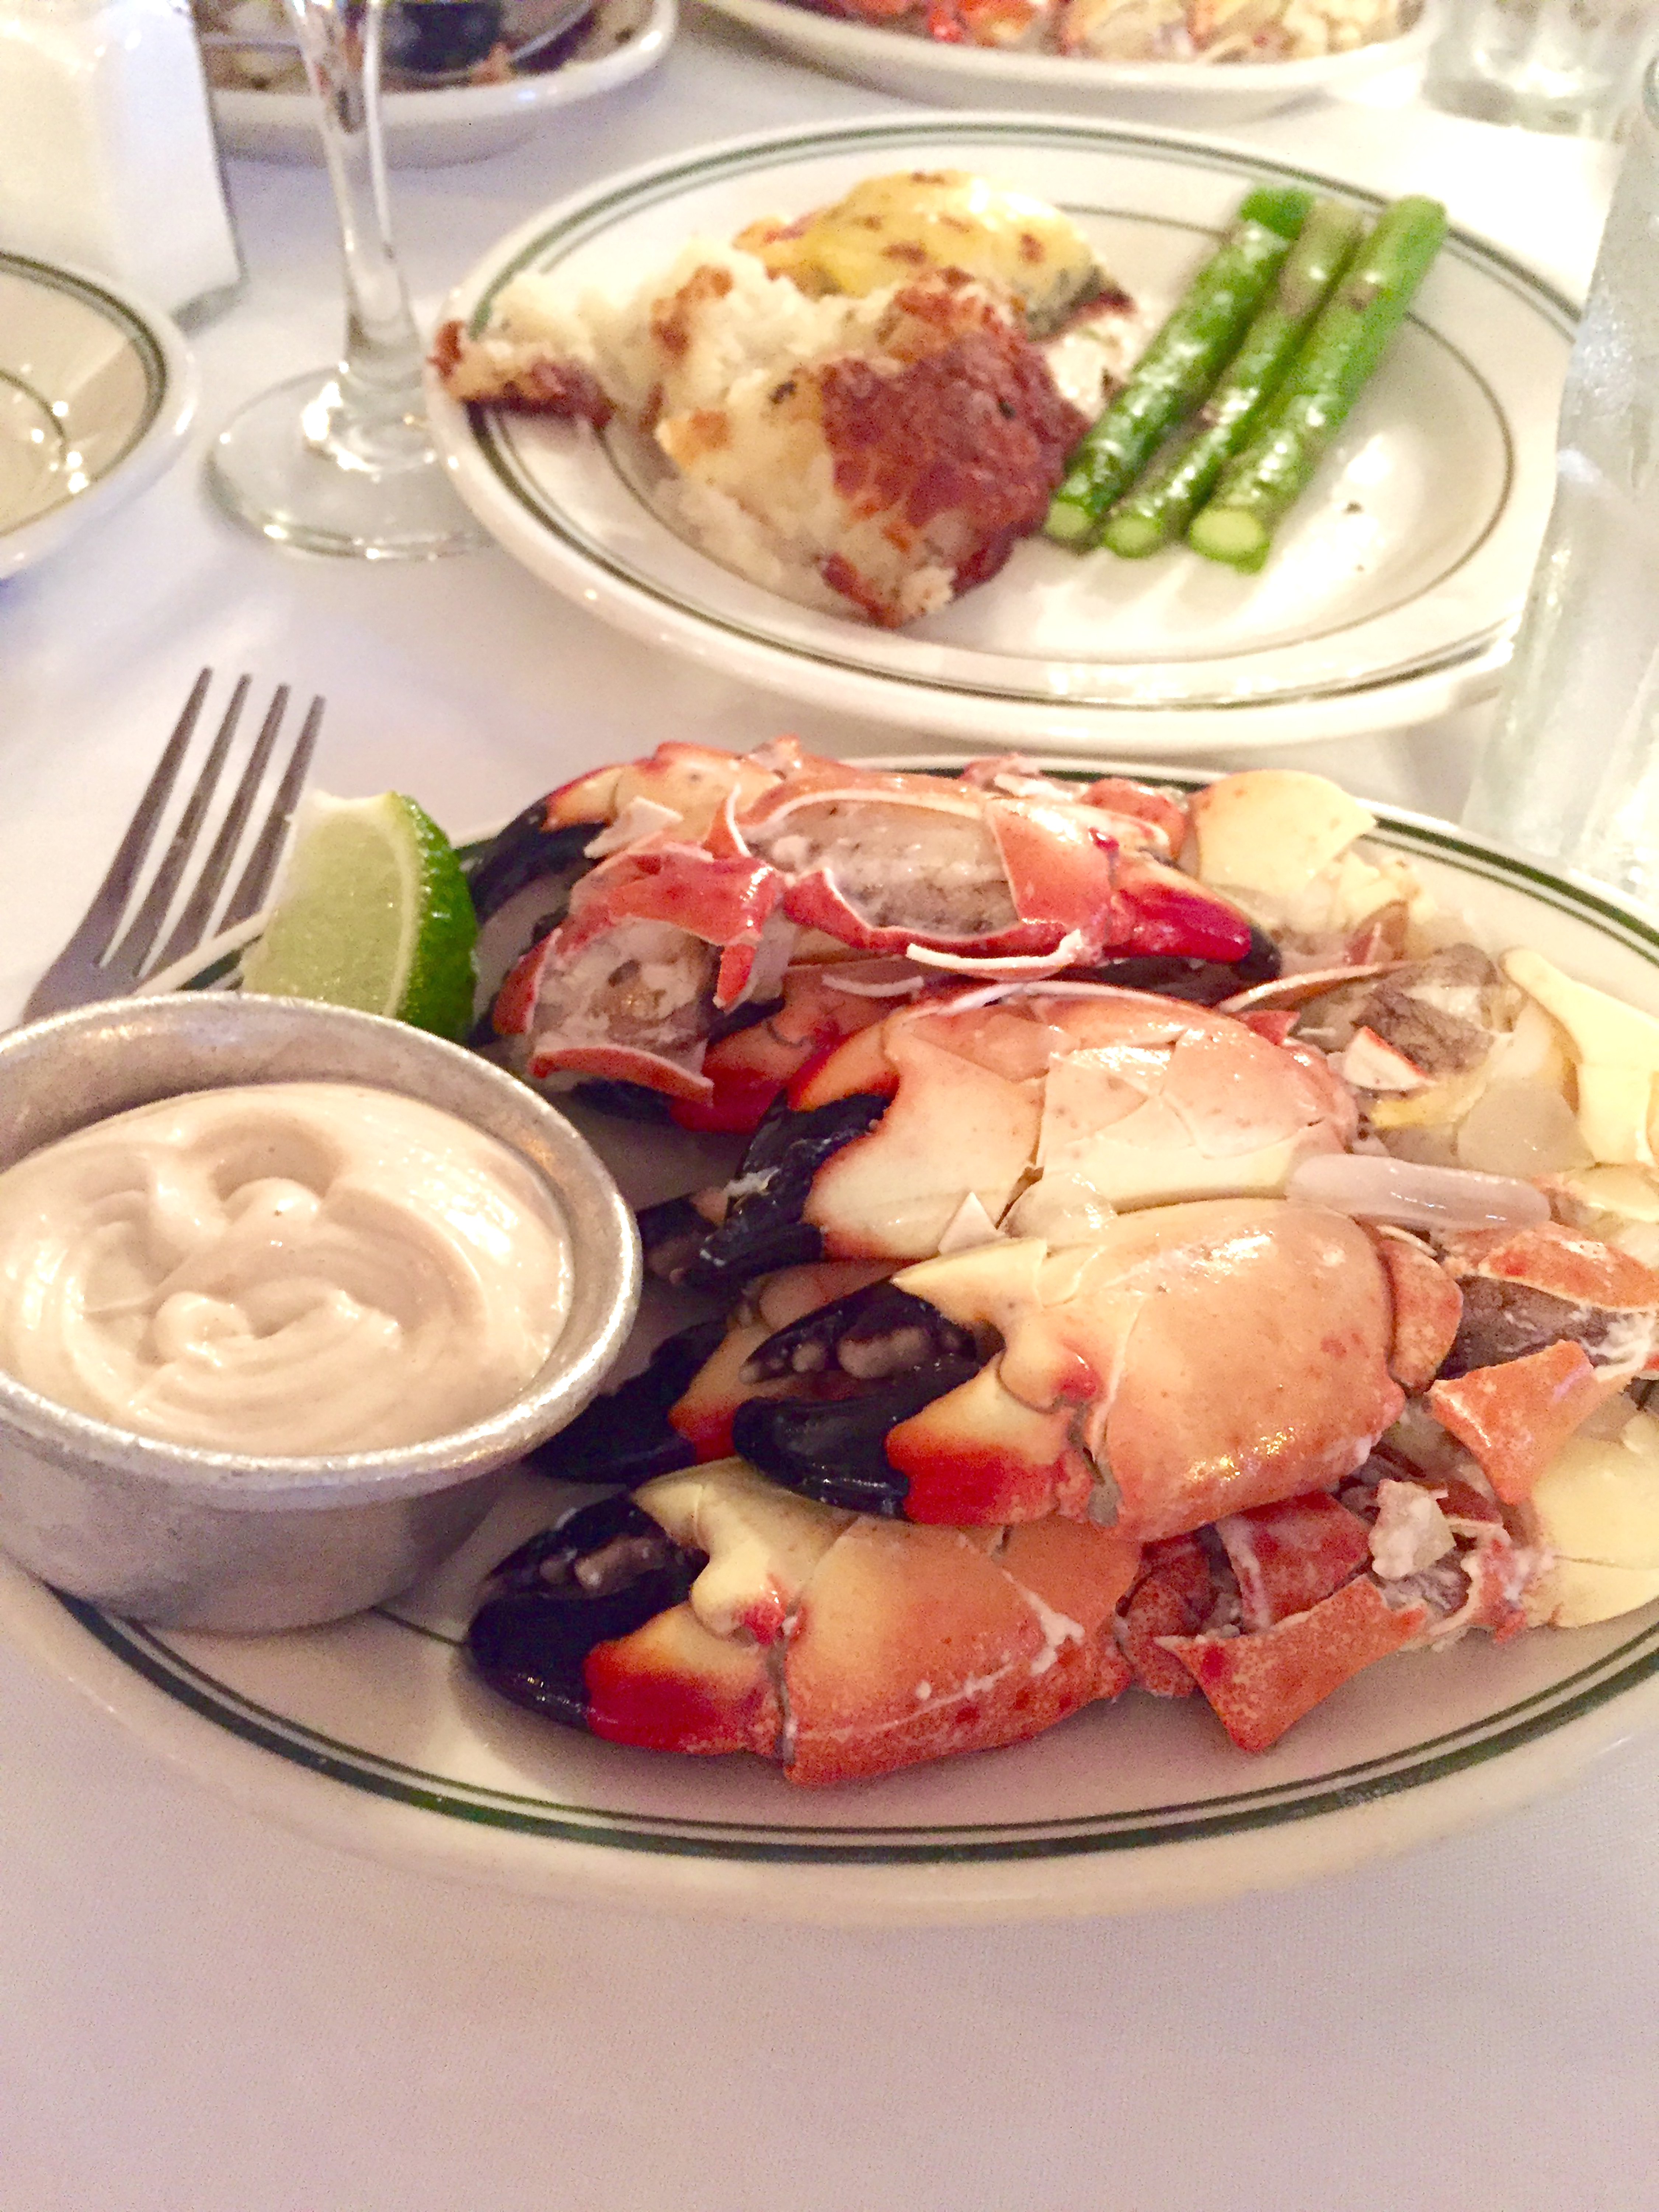 Stone crab claws at Joe's in Miami. Thank you, sir, I'll have another!